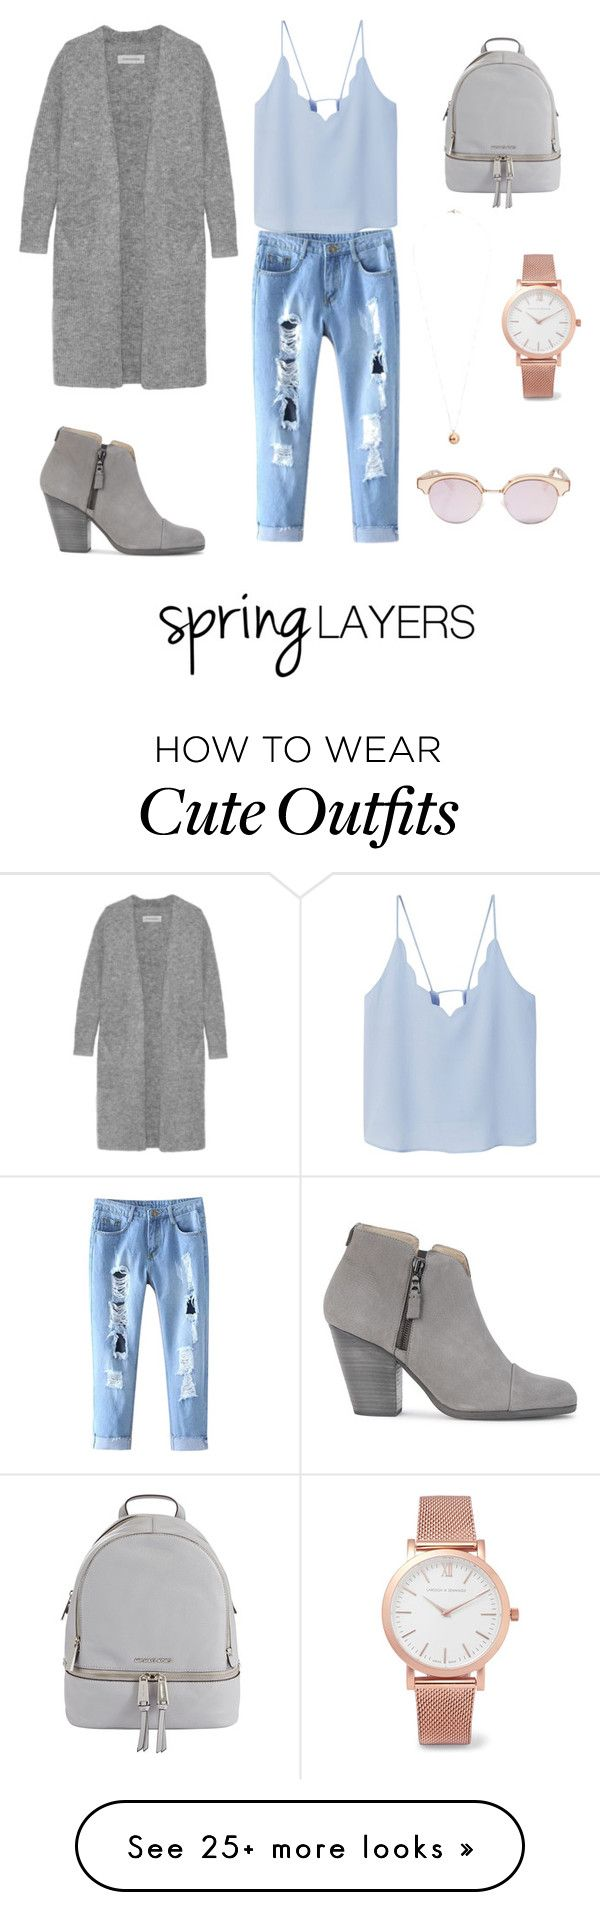 """""""Looks plain but this is what my ideal spring outfit would look like. I think the cardi really puts the whole outfit together along with the accessories:)"""" by jassienguyen on Polyvore featuring MANGO, By Malene Birger, rag & bone, MICHAEL Michael Kors, Larsson & Jennings, Dorothy Perkins, Le Specs, cutecardigan and springlayers"""